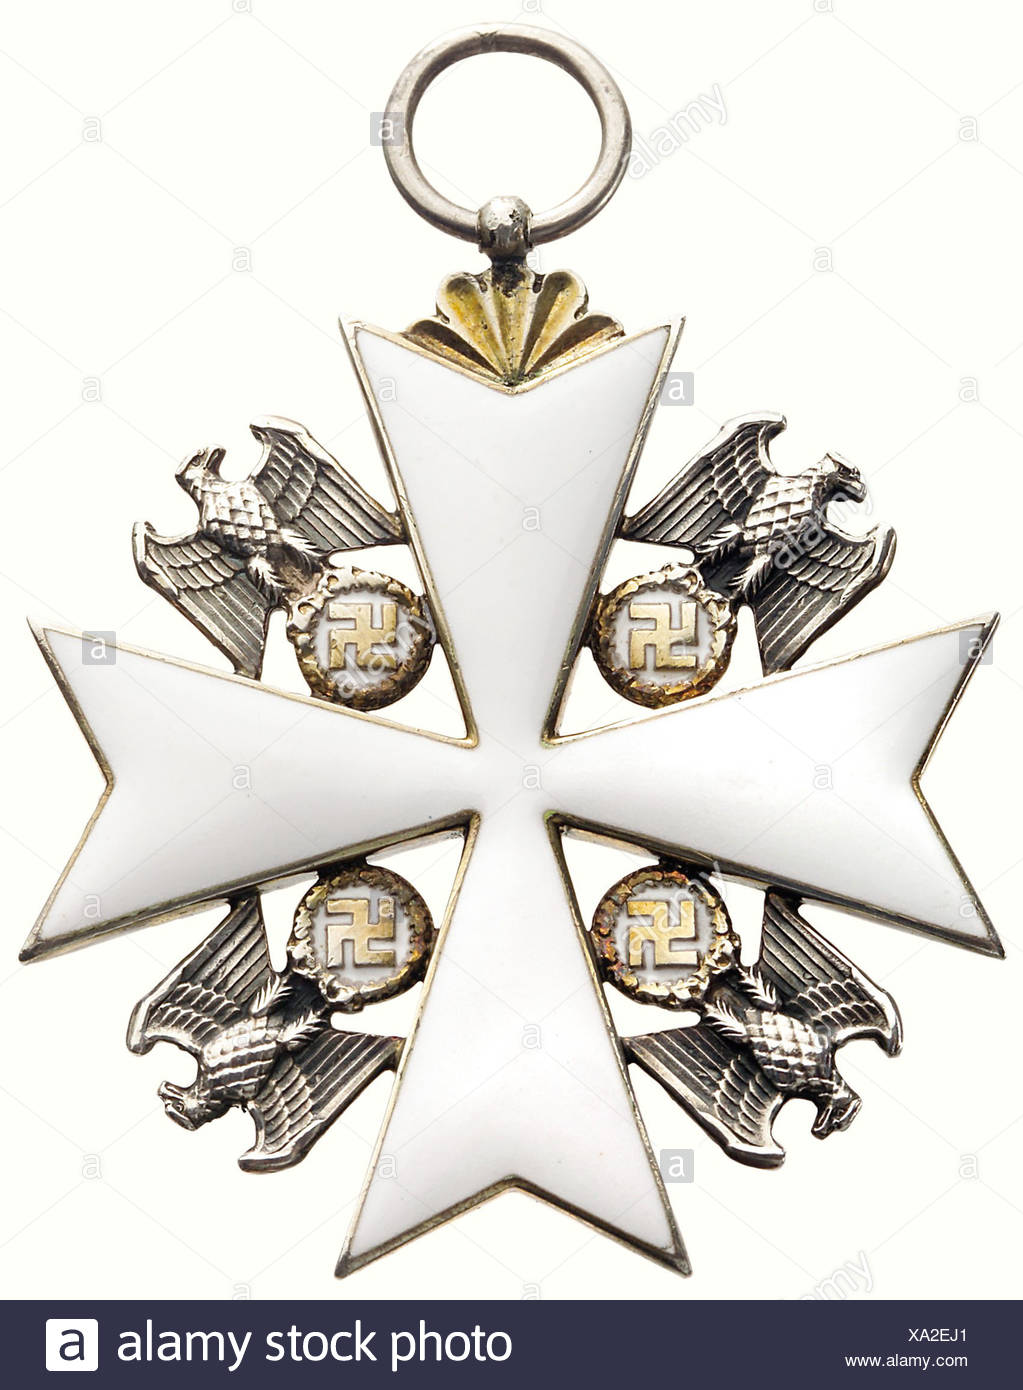 An Order of the German Eagle, a 1st class cross, 1943 - 1945. Silver, gold-plated and enamelled, 50 x 50 mm, weight 26.5 g. In the corners silver eagles with golden oak leaf wreath and swastica, silver ring (OEK 3467). historic, historical, 1930s, 20th century, awards, award, German Reich, Third Reich, Nazi era, National Socialism, object, objects, stills, medal, decoration, medals, decorations, clipping, cut out, cut-out, cut-outs, honor, honour, National Socialist, Nazi, Nazi period, symbol, symbols, emblem, emblems, insignia, Additional-Rights-Clearances-NA Stock Photo